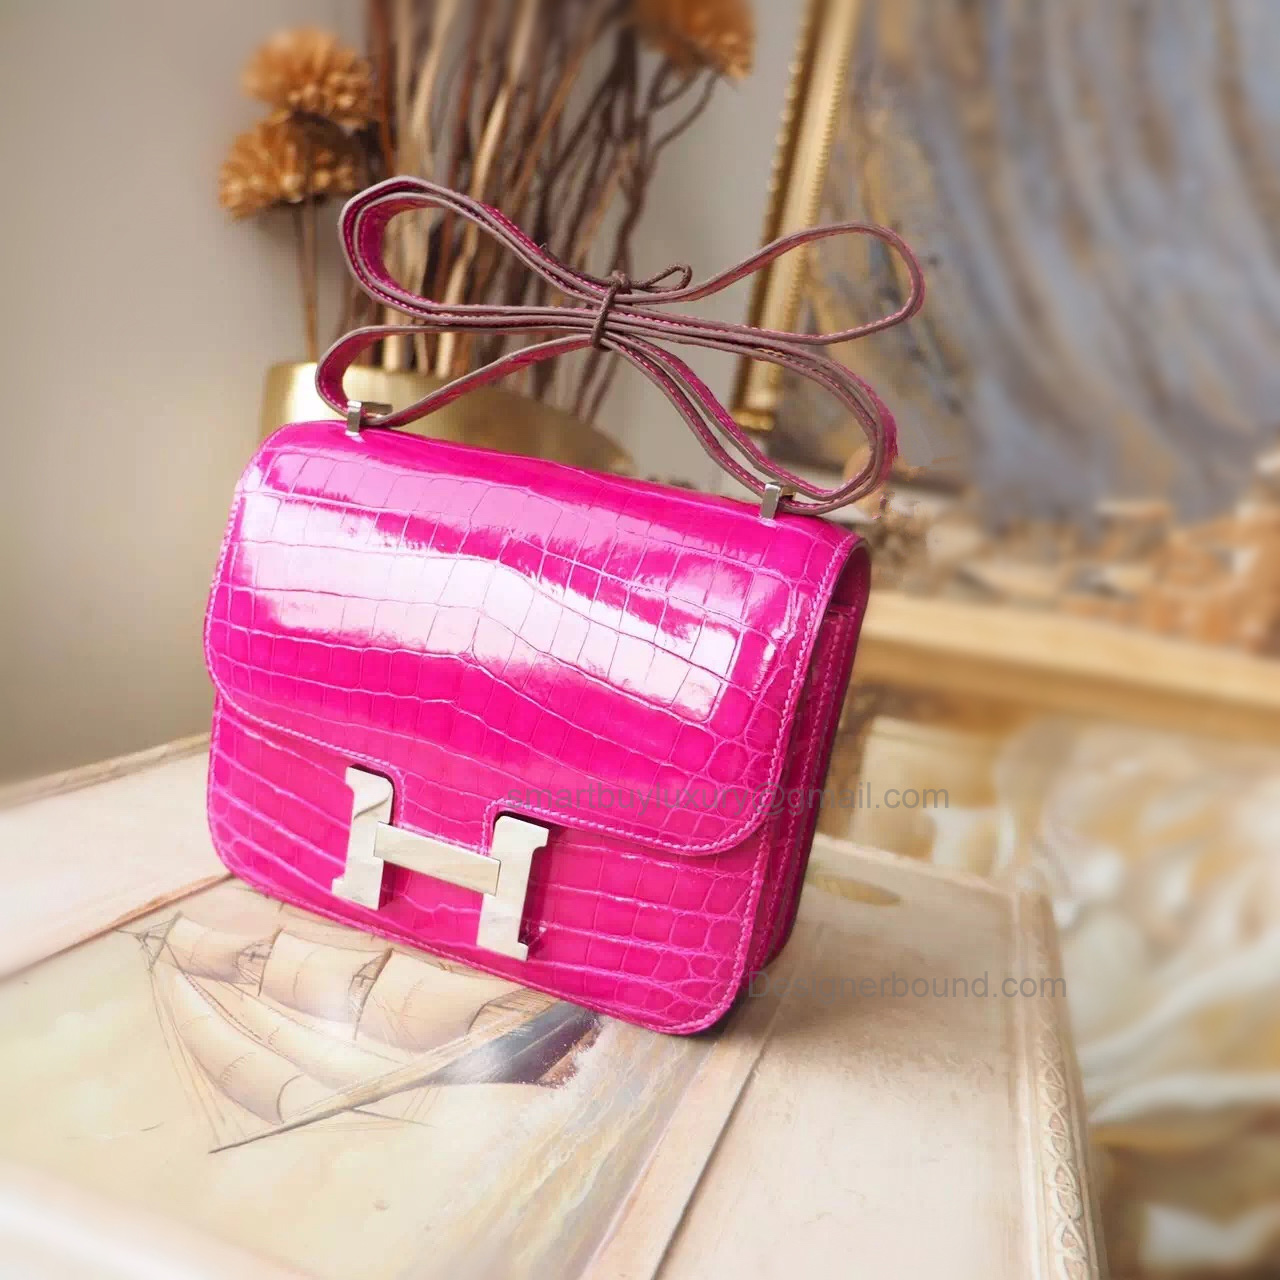 Hermes Mini Constance 18 Bag in j5 Rose Scheherazade Shining Nile Croc PHW